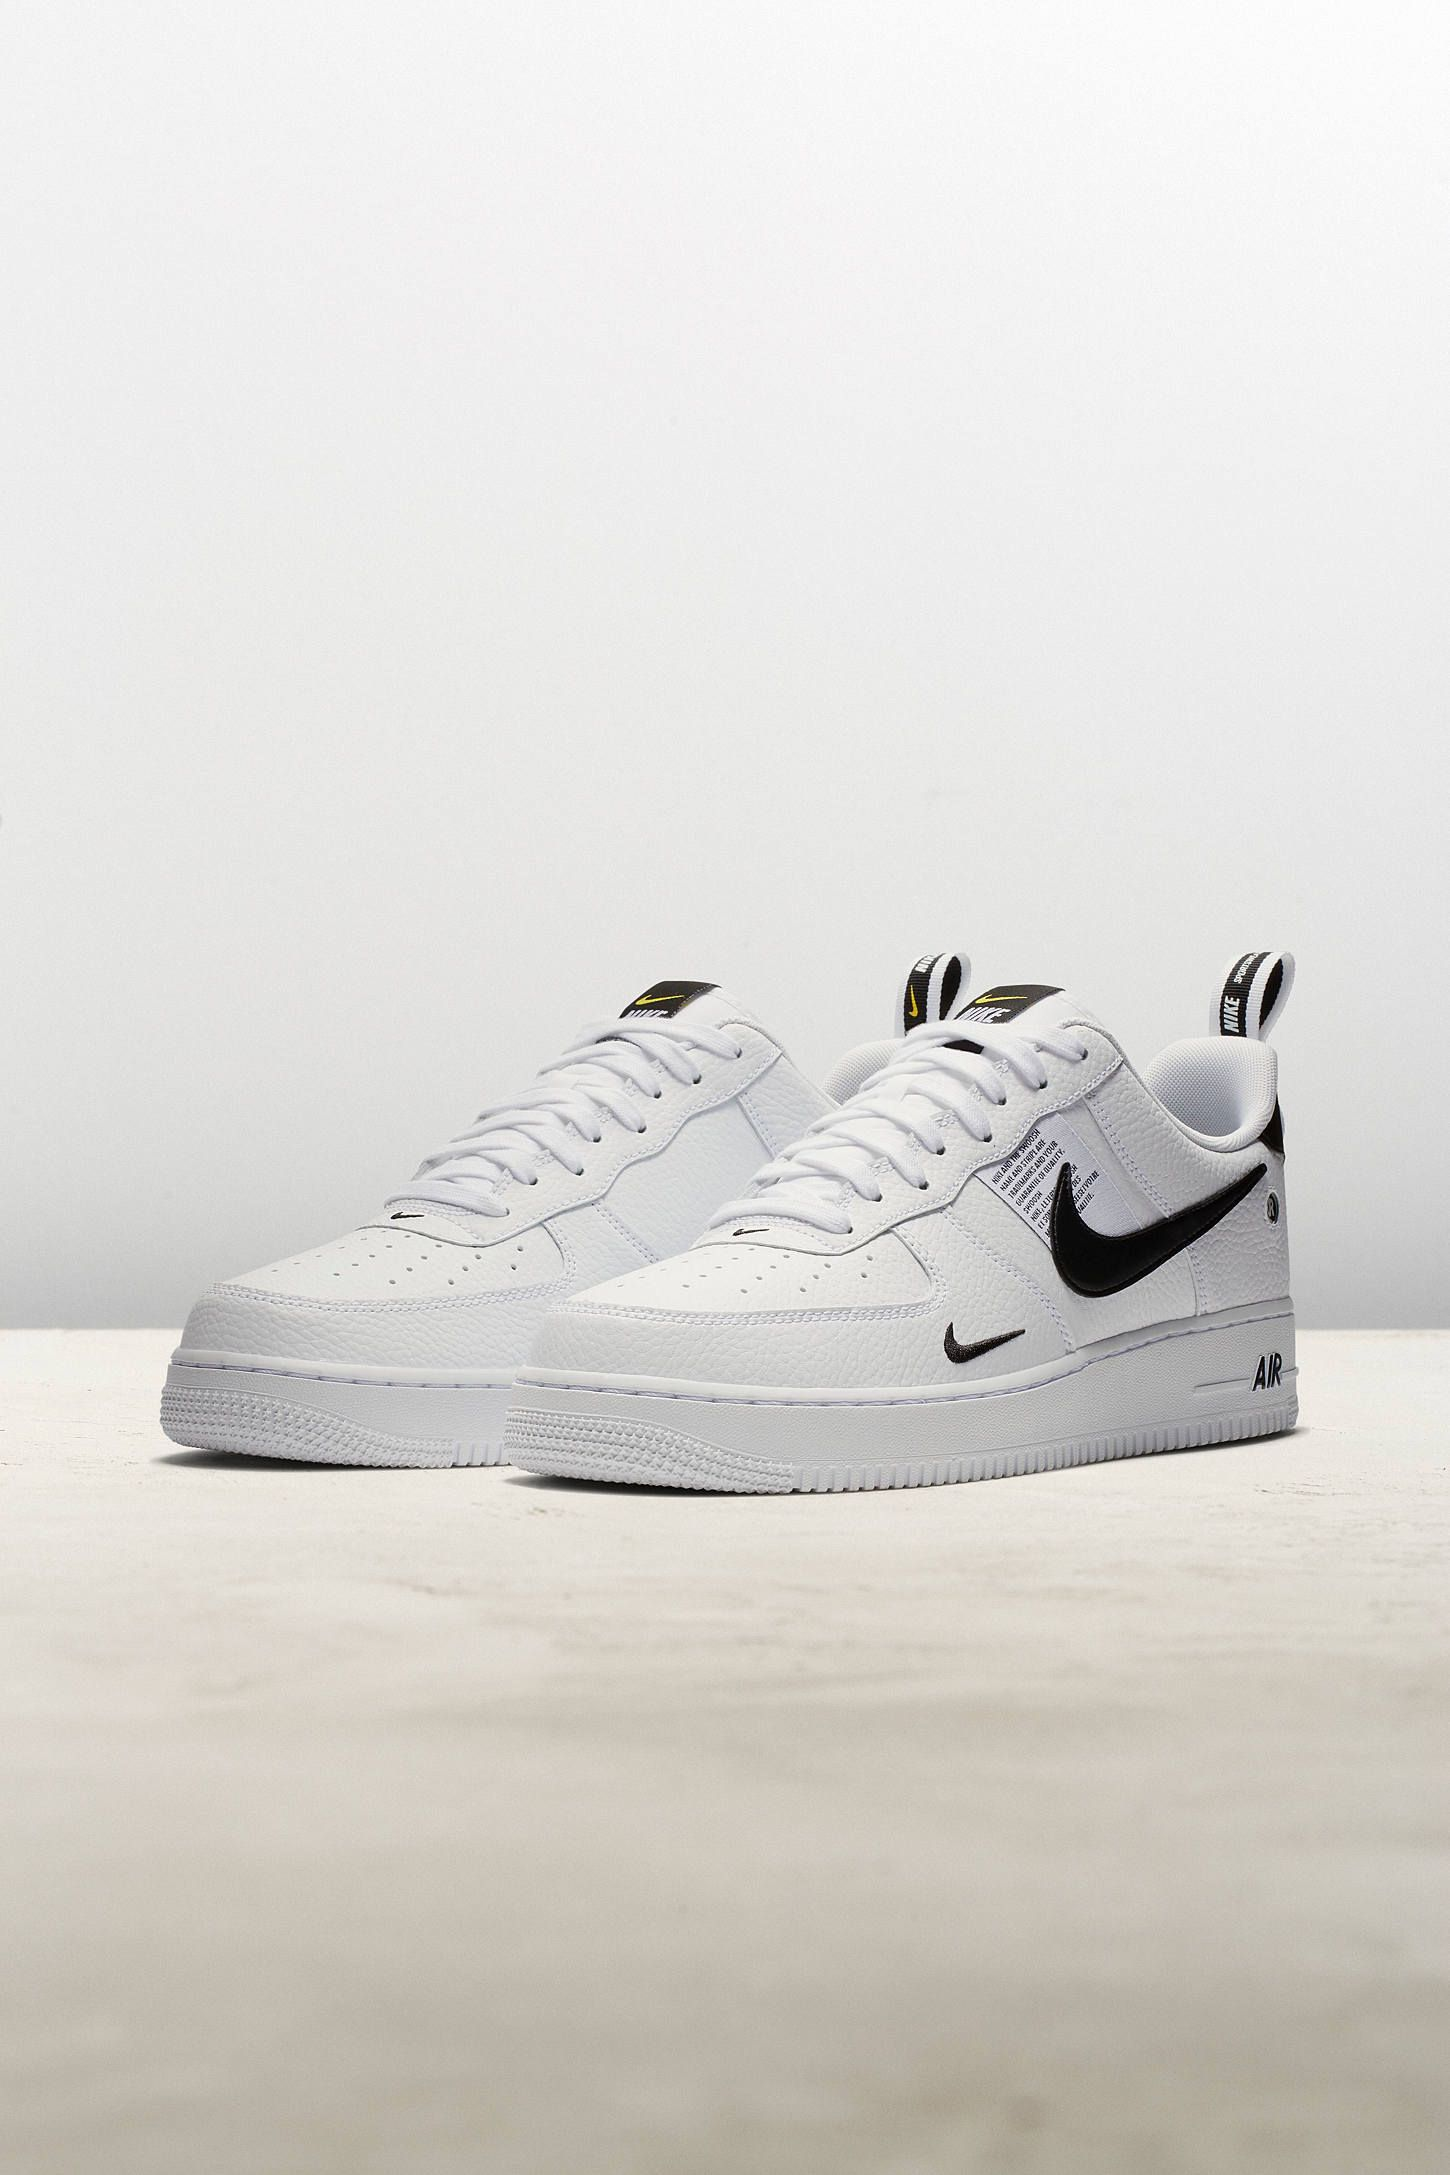 3c57c9d9b92 Nike Air Force 1  07 LV8 Utility Sneaker